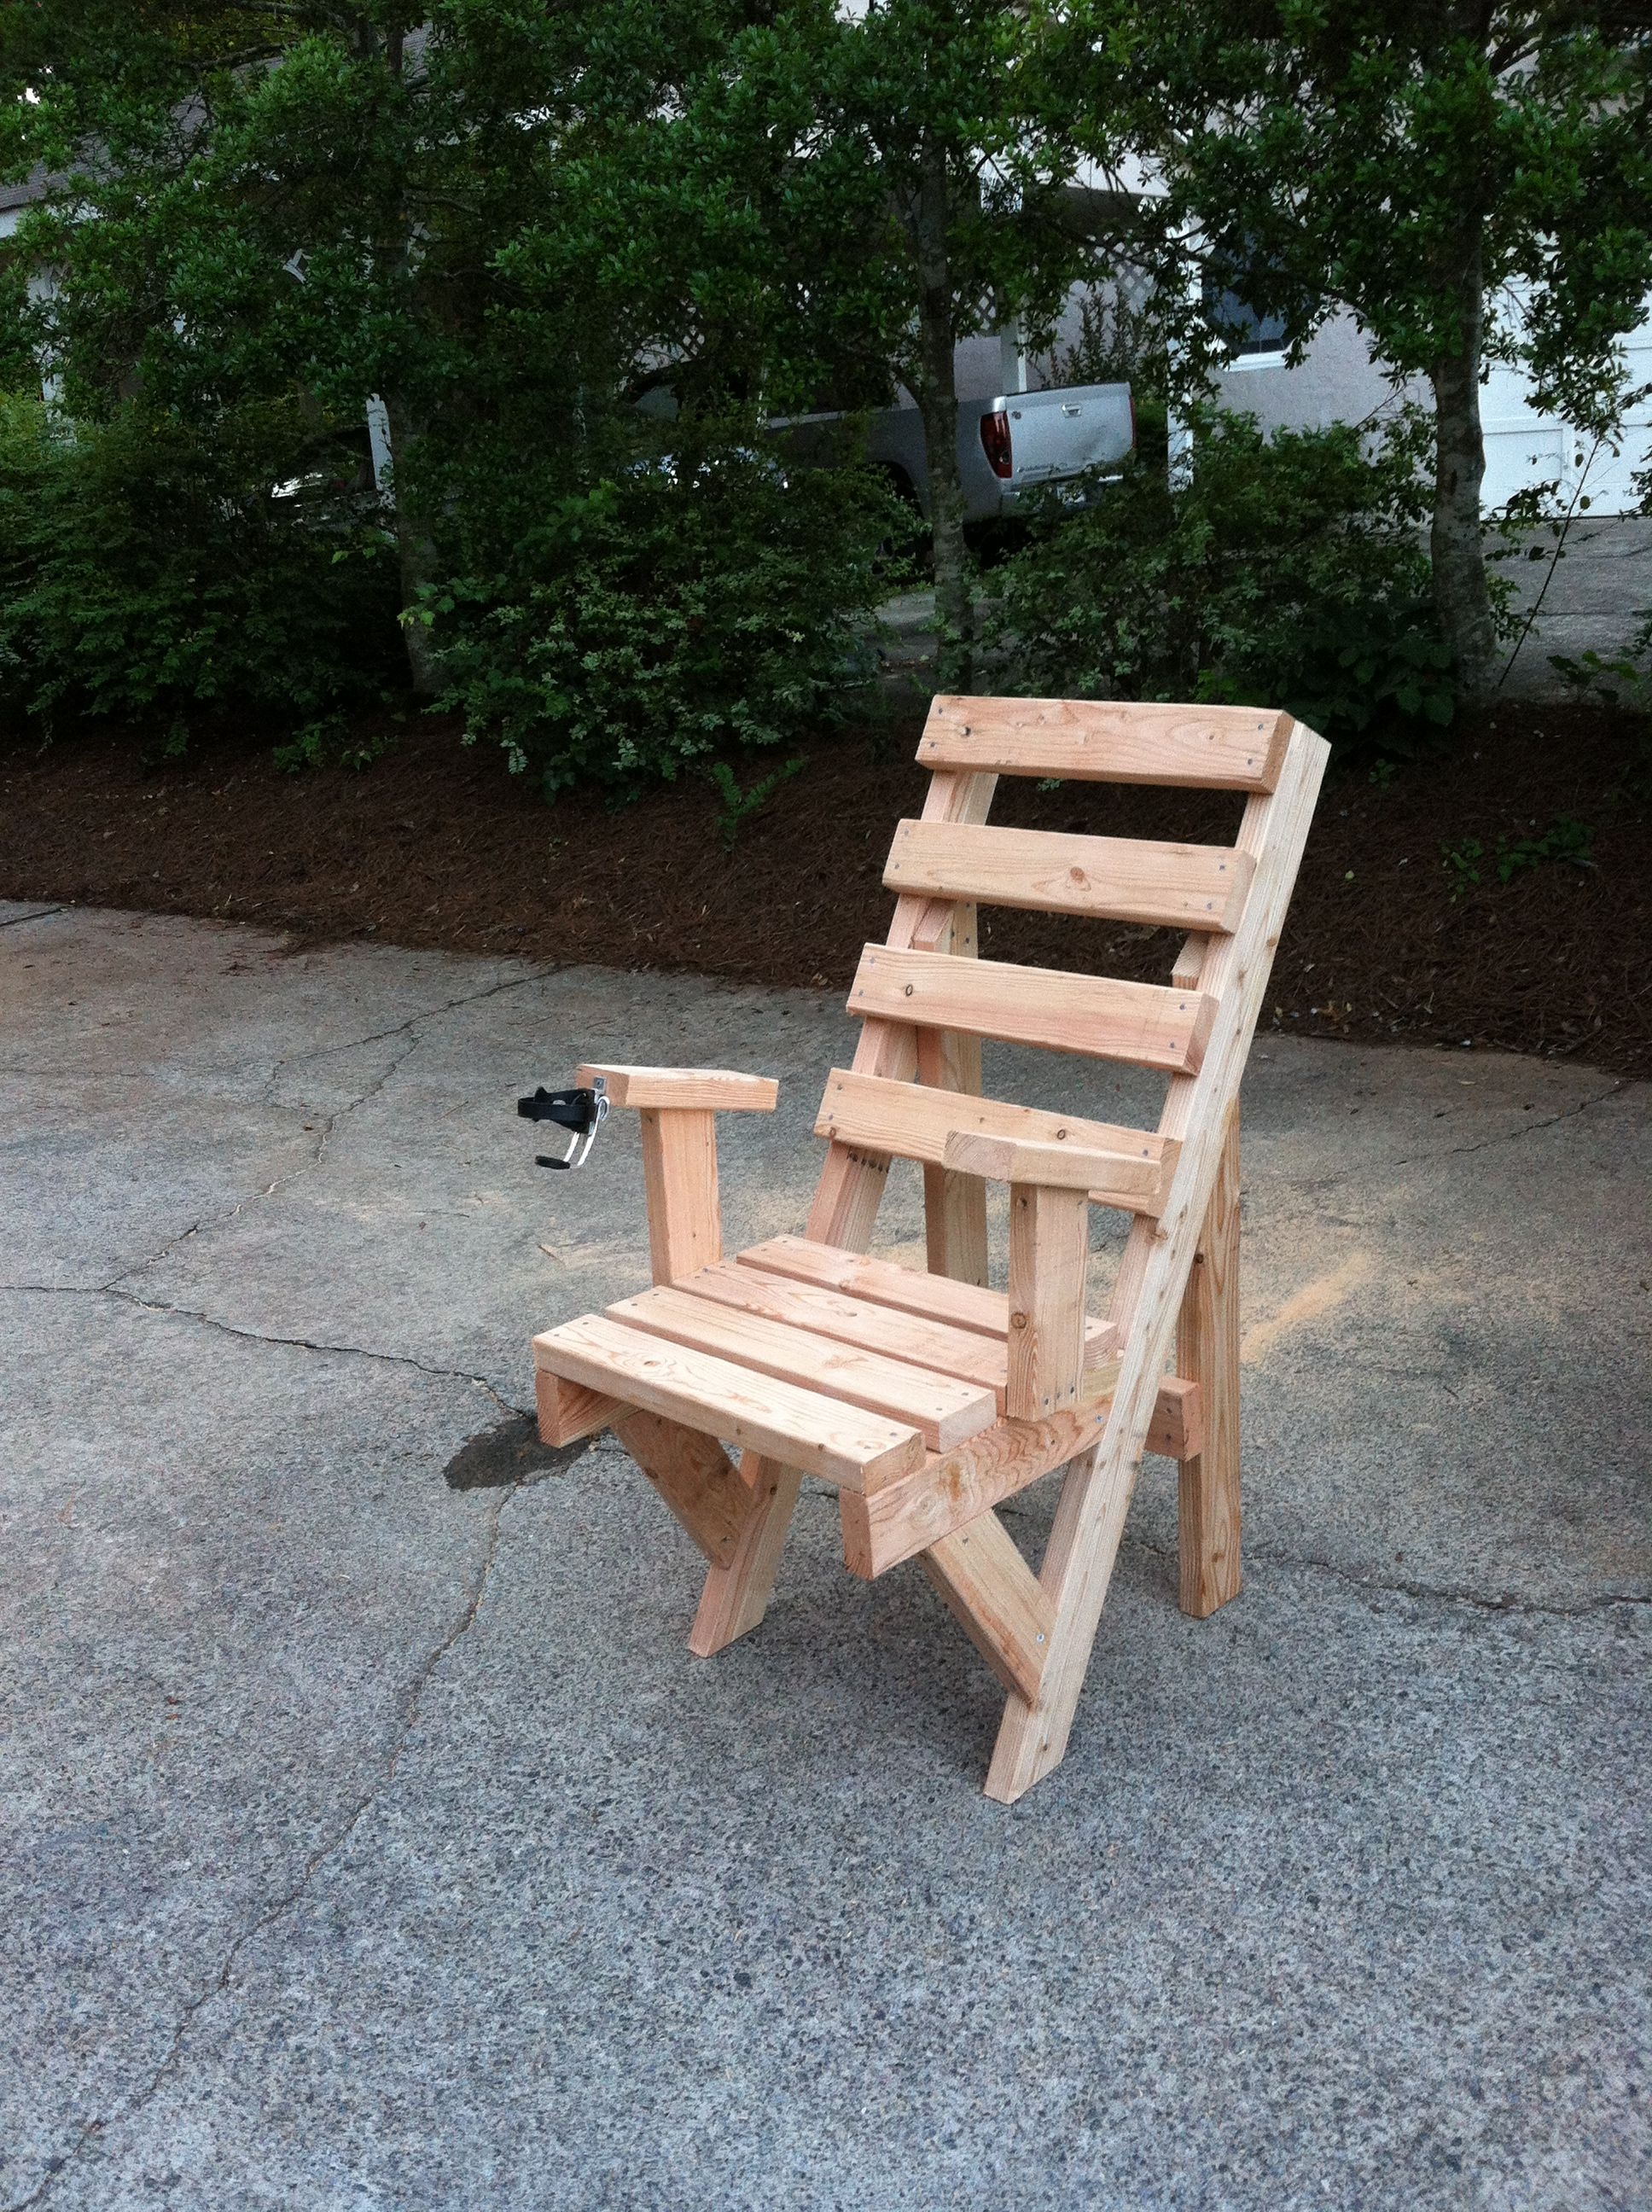 diy 2x4 outdoor chair | things to do | pinterest | outdoor chairs